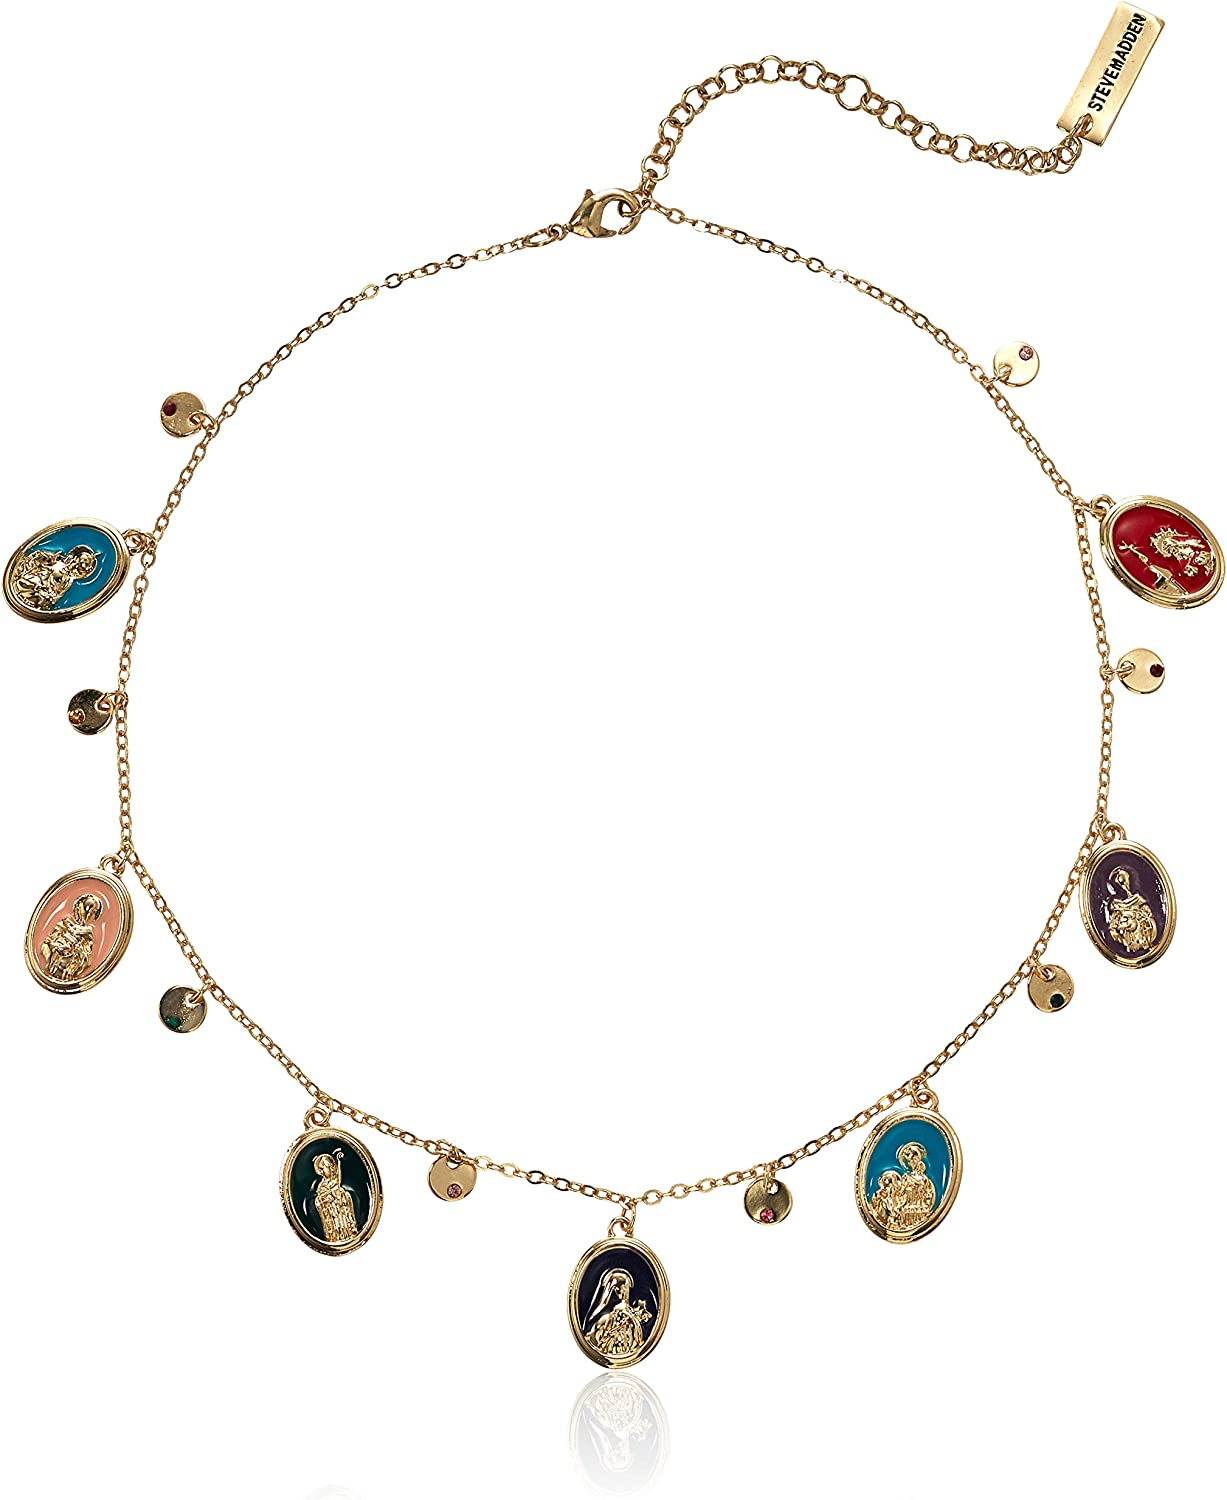 Steve Madden Women's Religious Virgin Mary and Saints and Disc Statement Charm Necklace